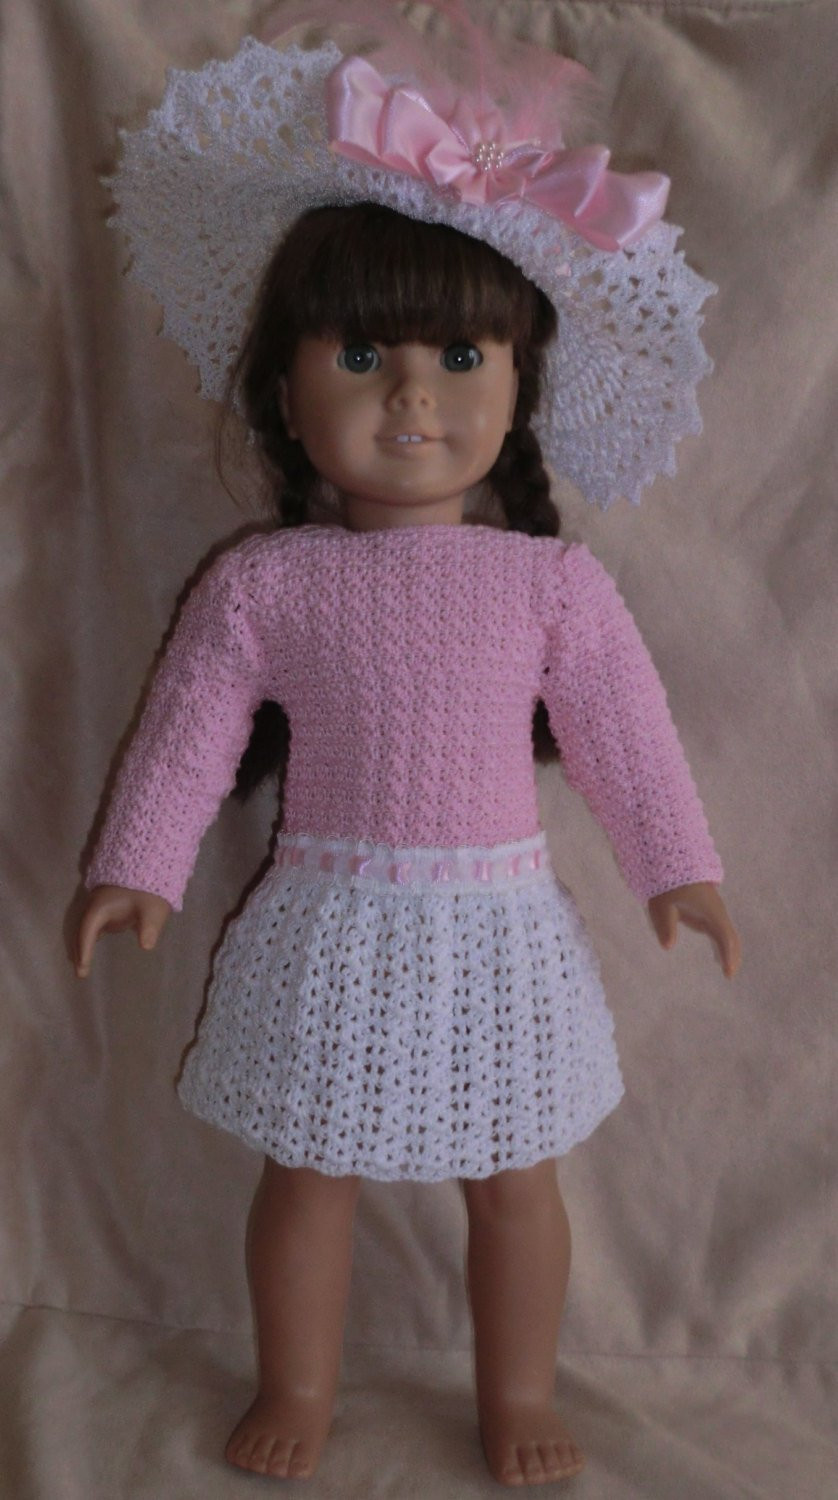 Crochet Outfits Fresh 215 Kentucky Derby Outfit Crochet Pattern for American Of Great 42 Ideas Crochet Outfits